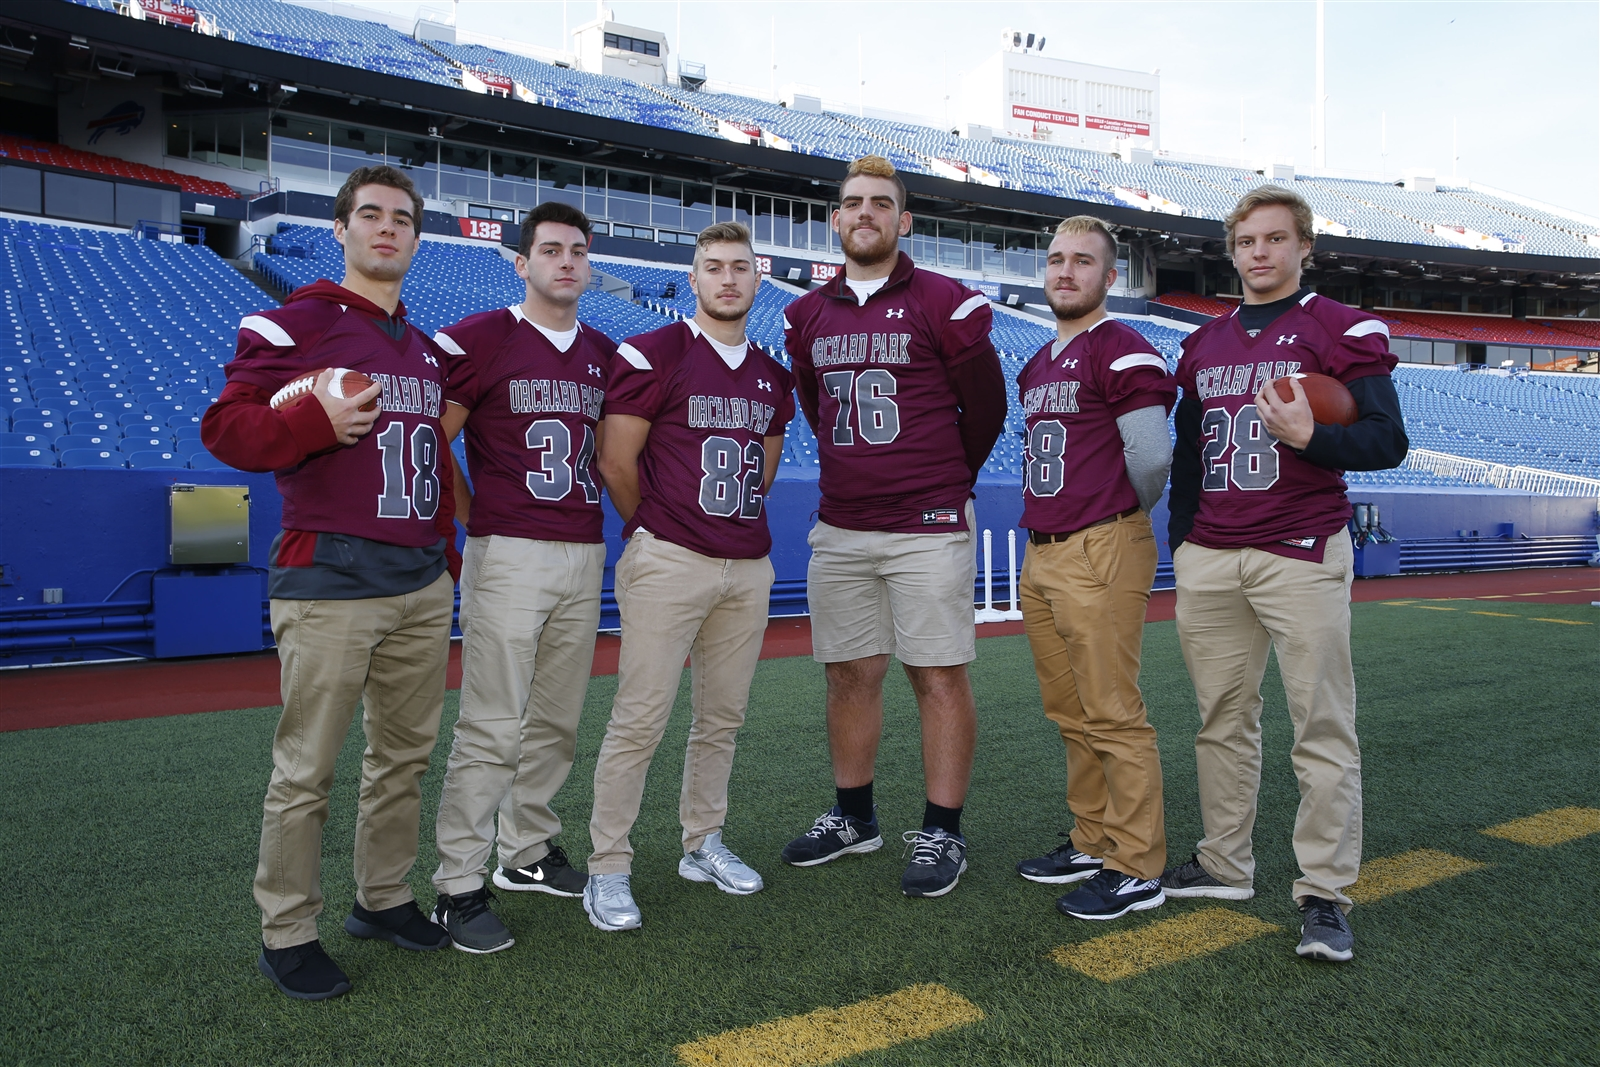 Orchard Park players pose for a photo during Section VI Media day.